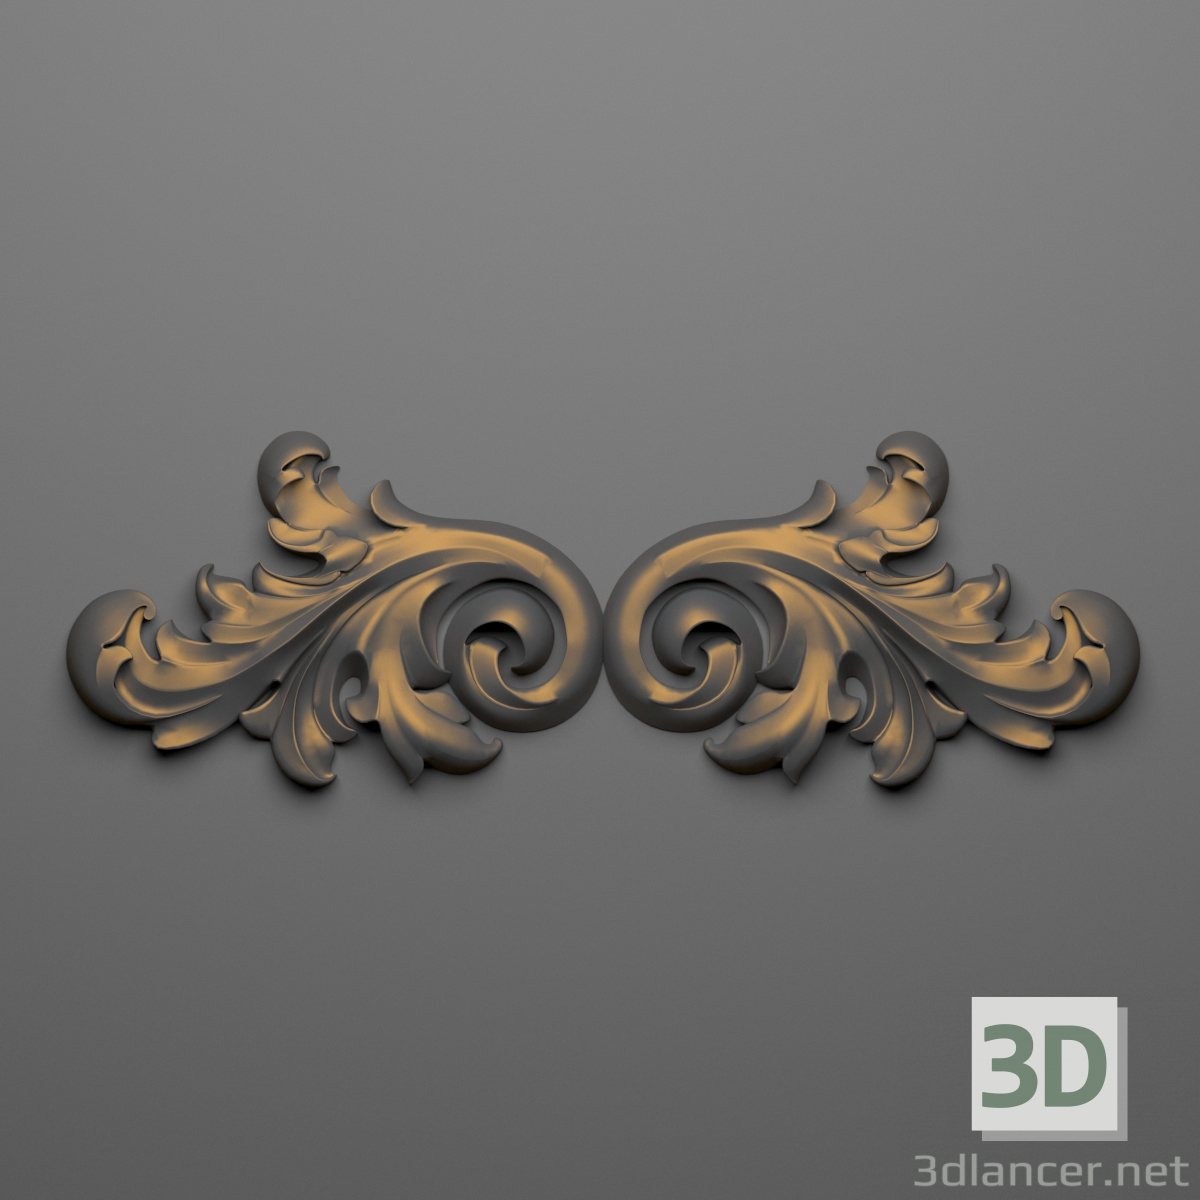 3d Decor 61 model buy - render